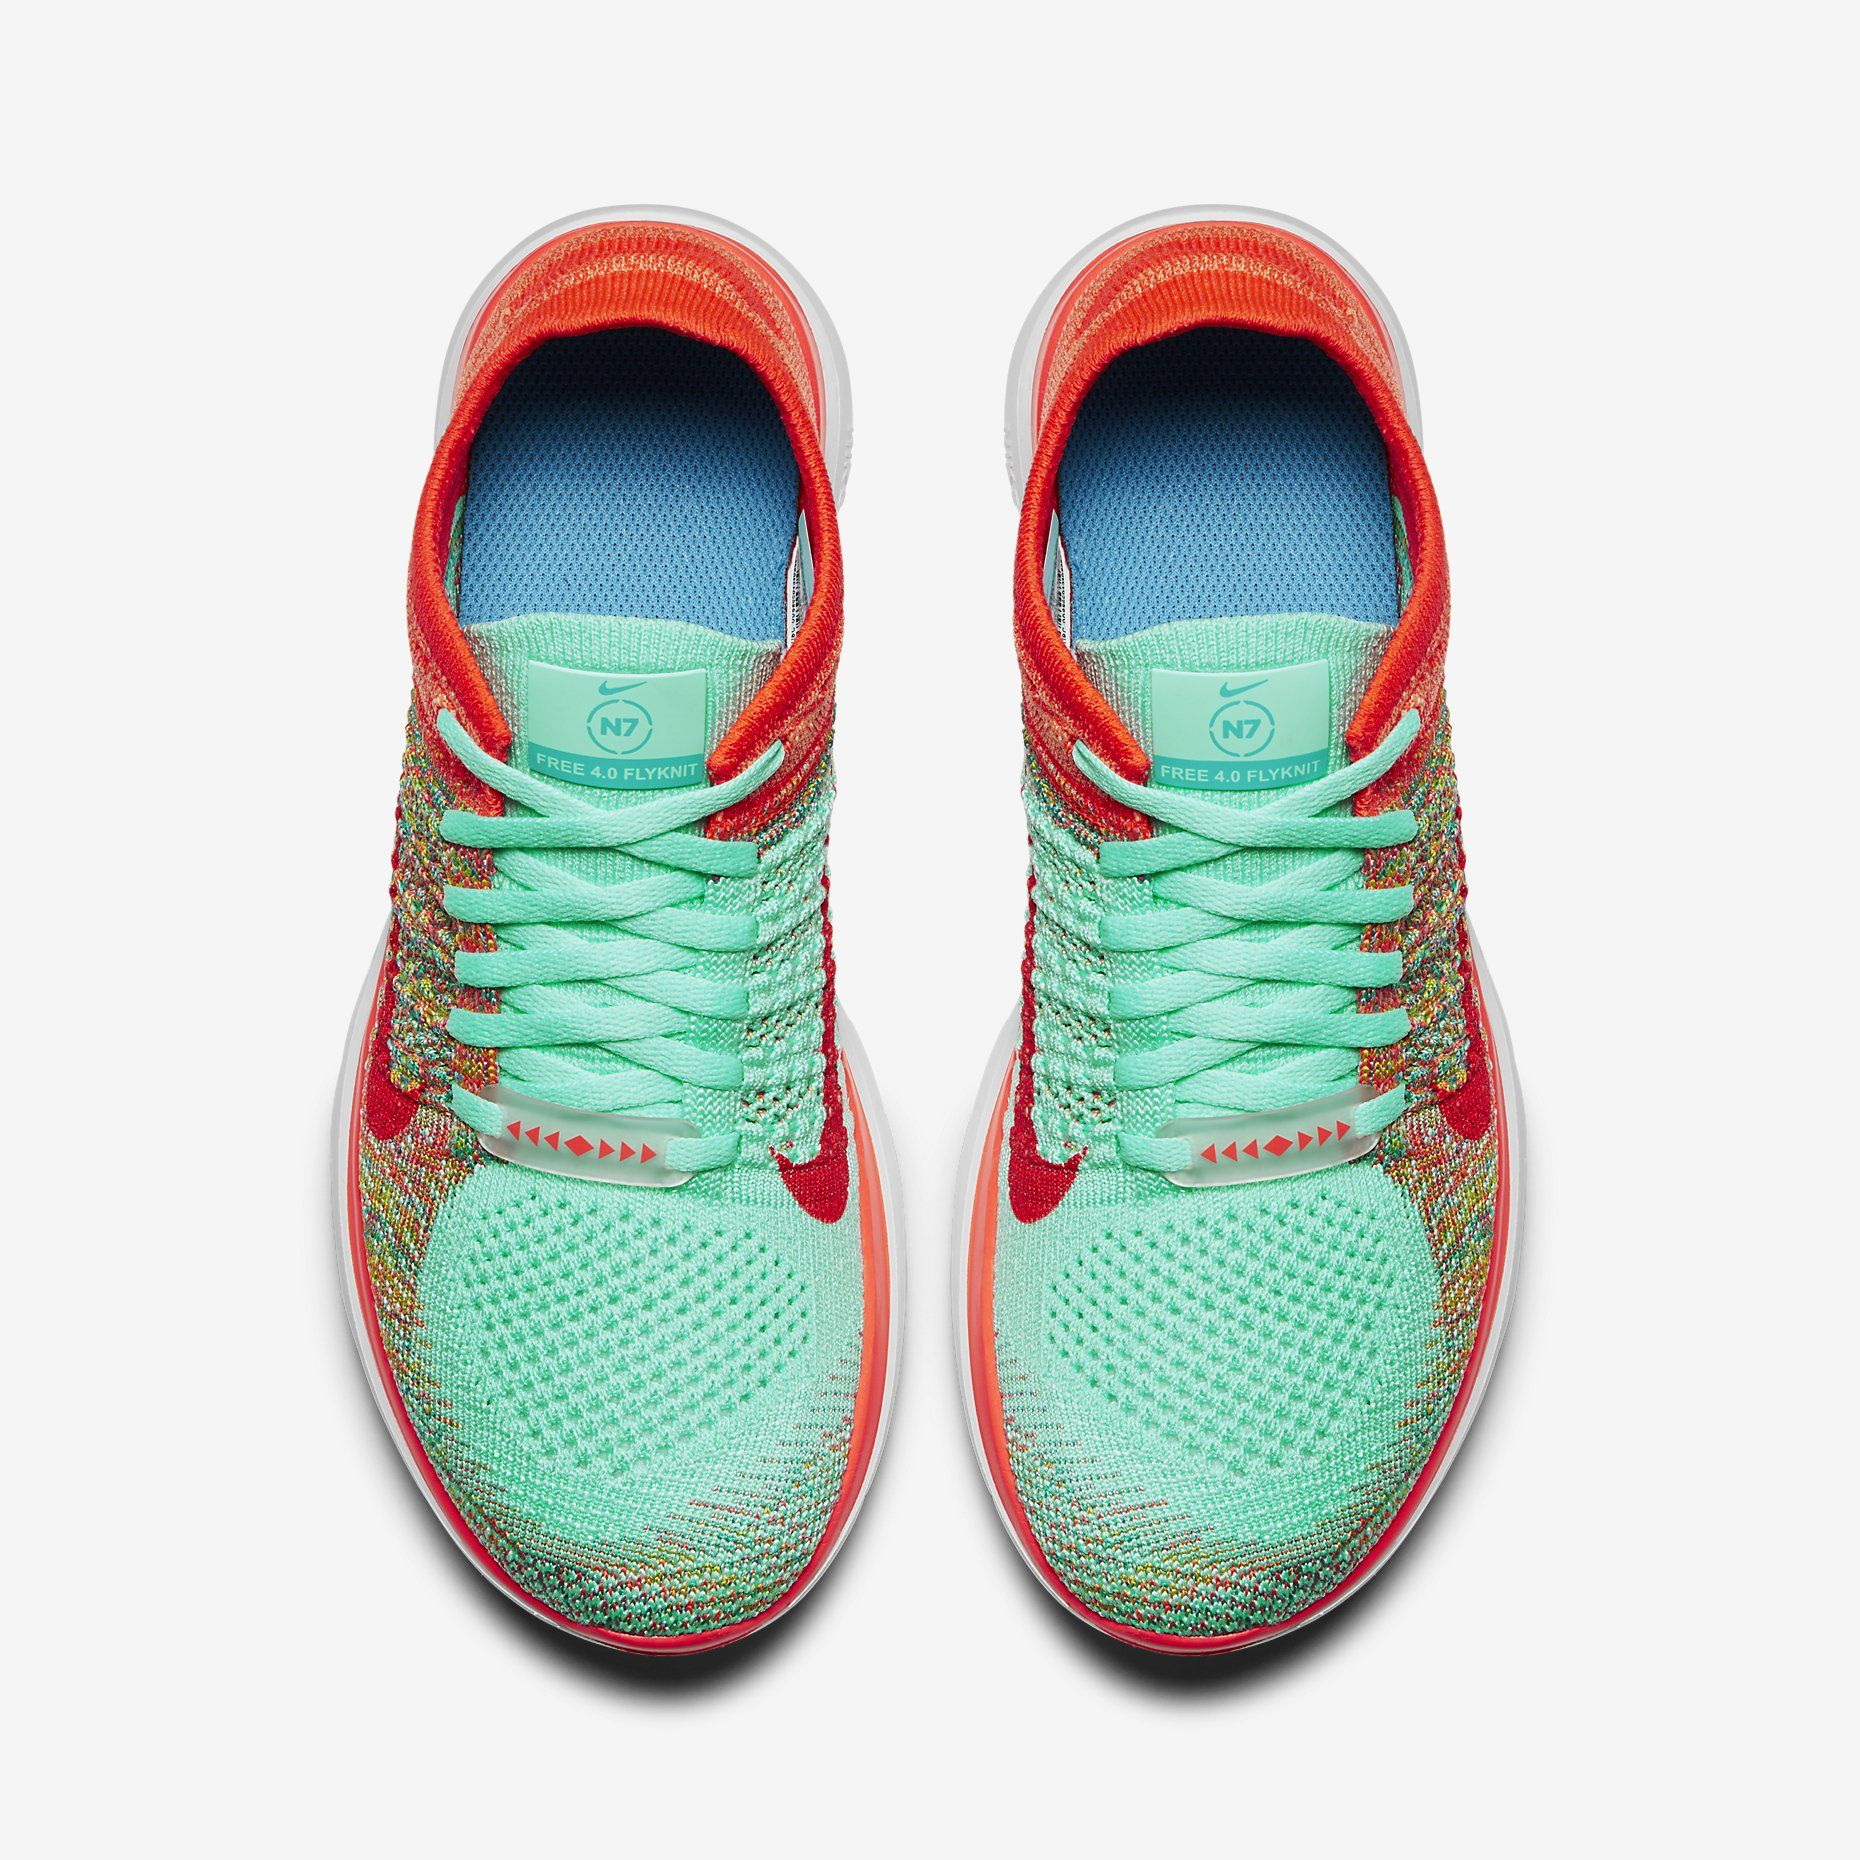 best sneakers b9719 e067f ... Earn cash back on these colorful Nike Free N7 4.0 Flyknit running shoes  with StuffDOT!